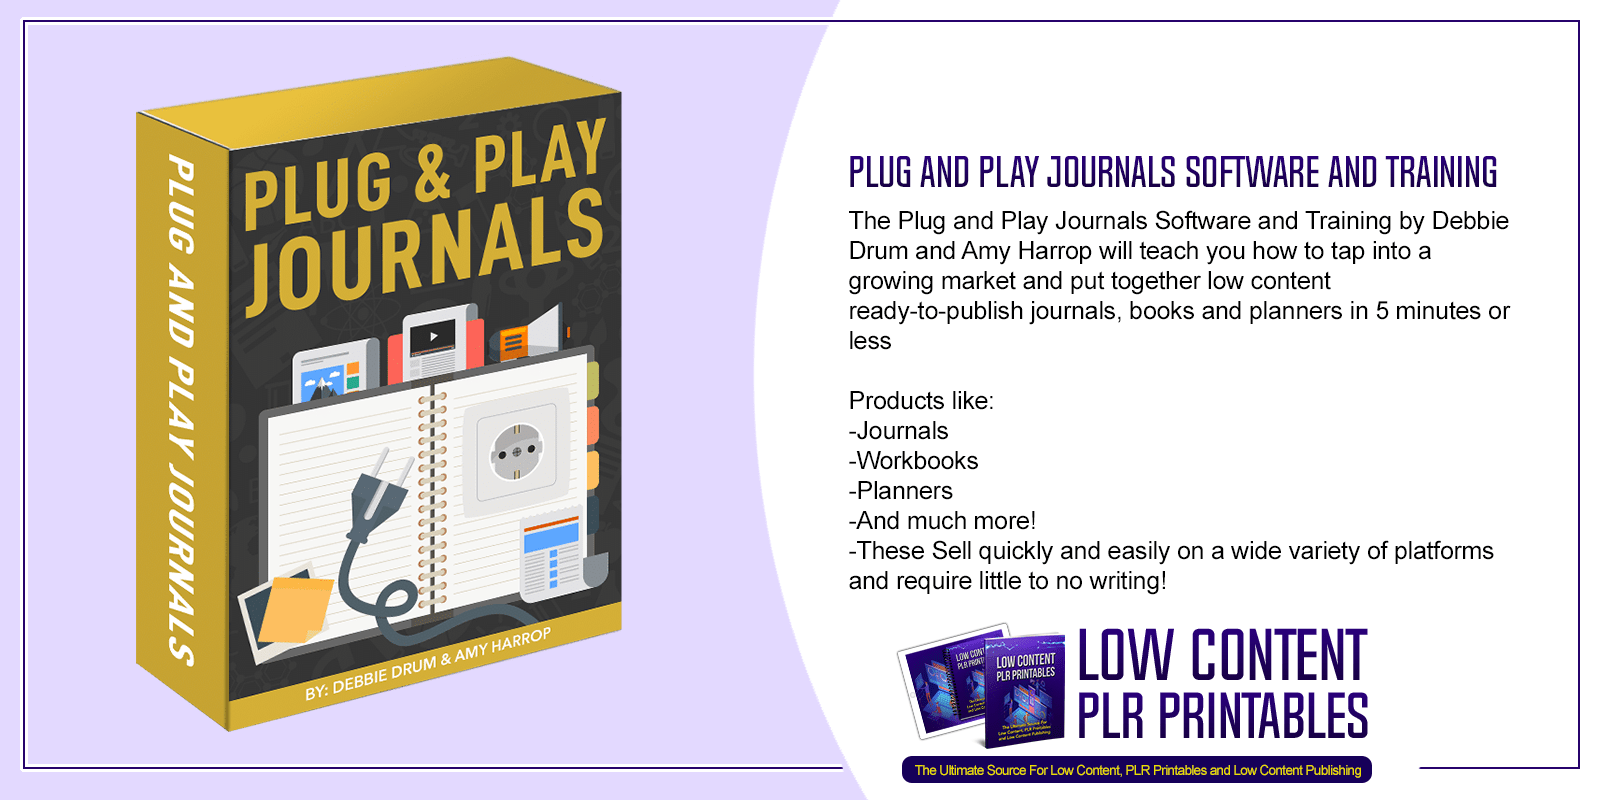 Plug and Play Journals Software and Training